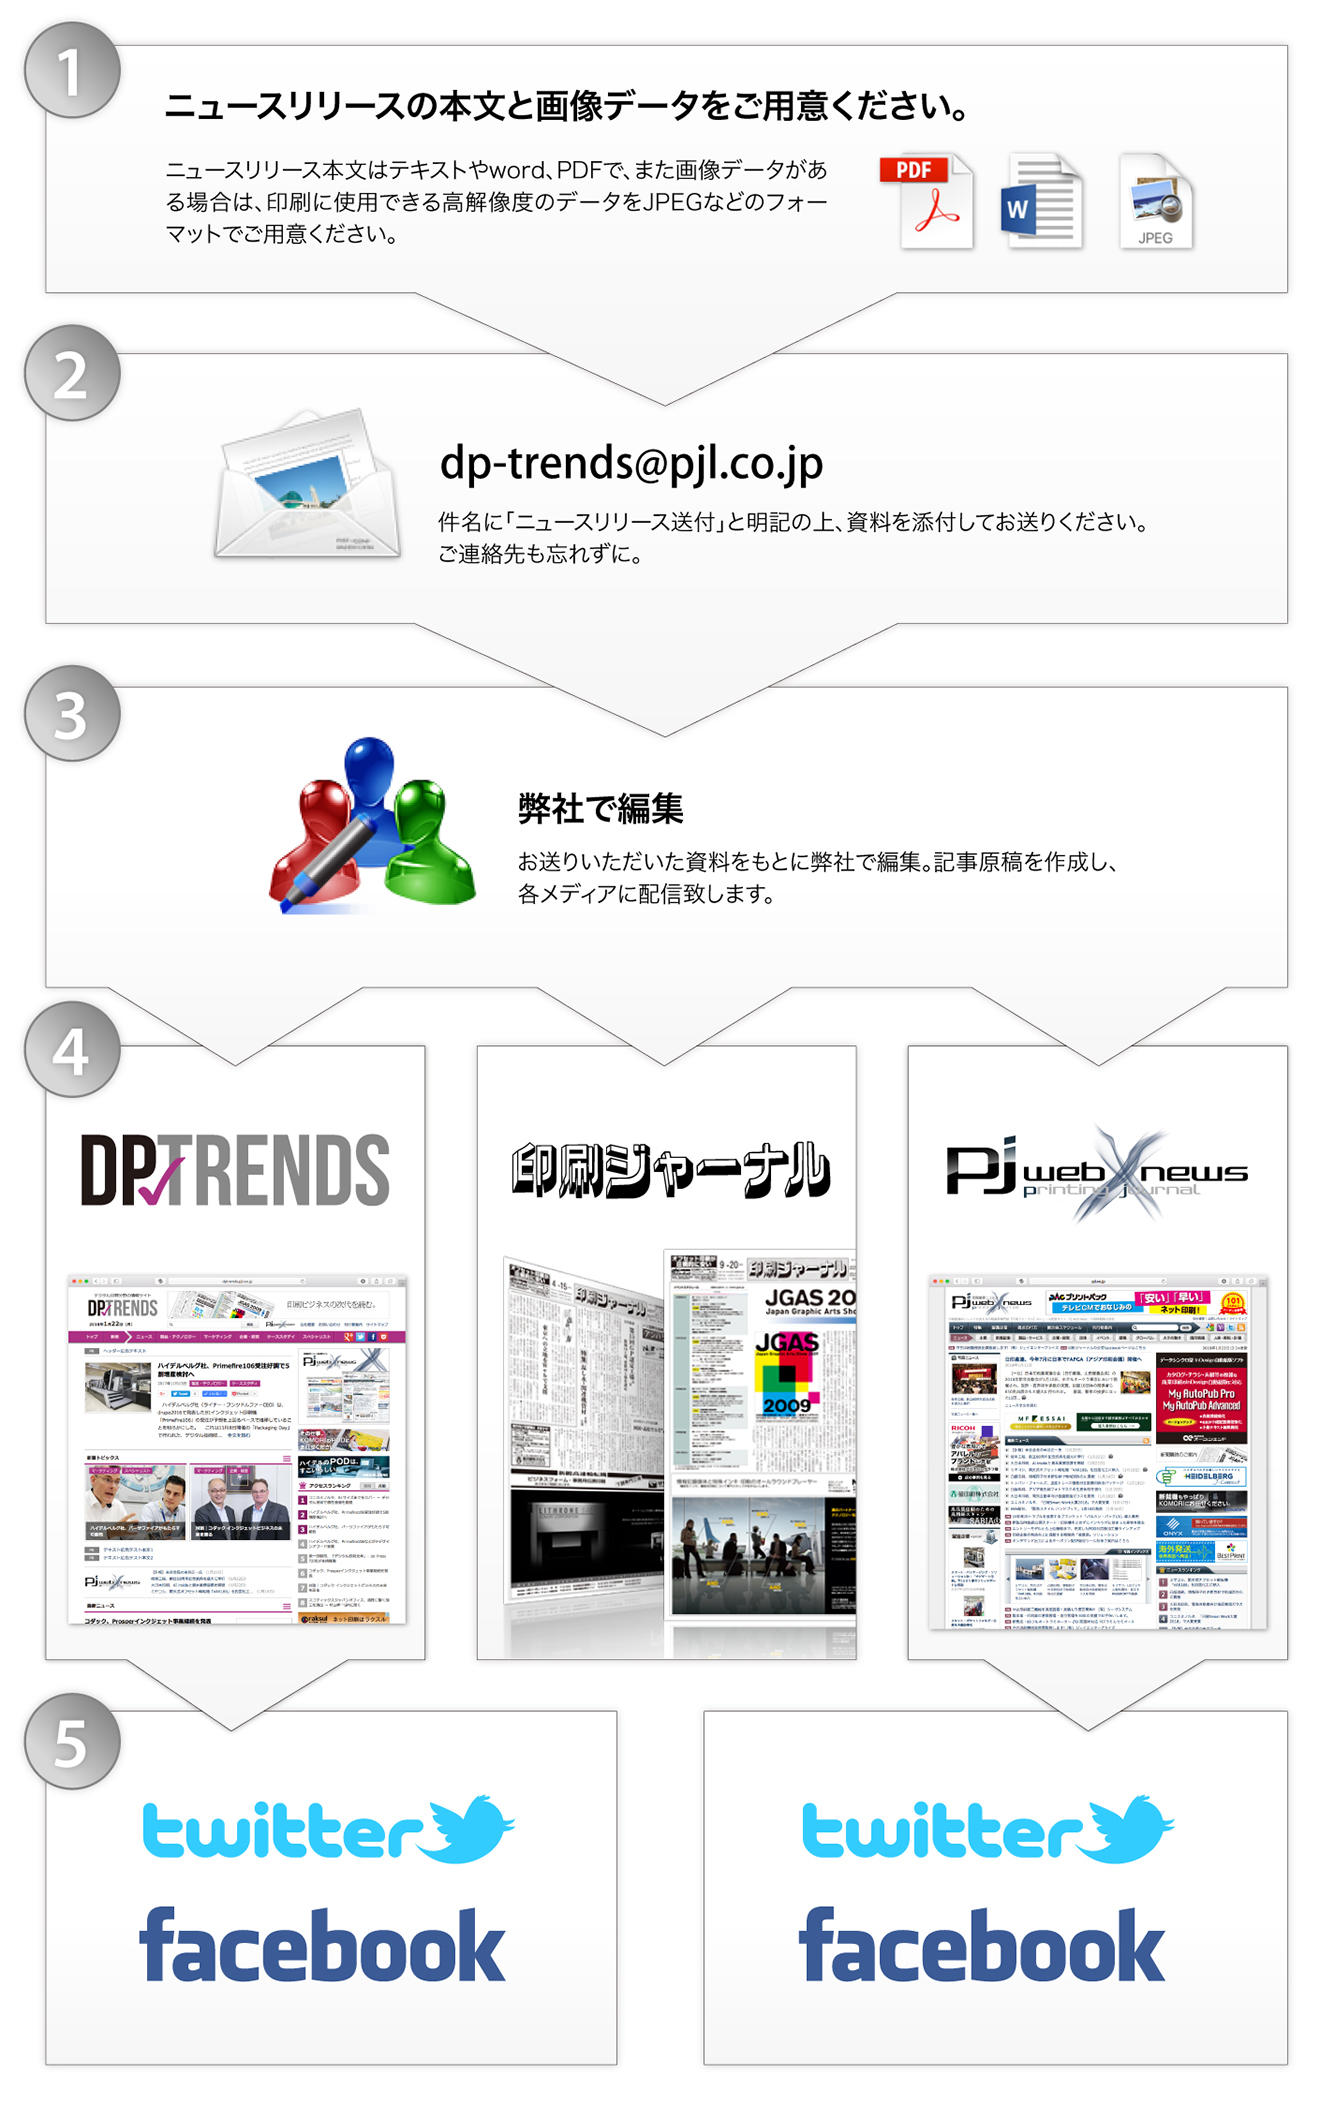 dp-trends_newsrelease_flow_2.jpg